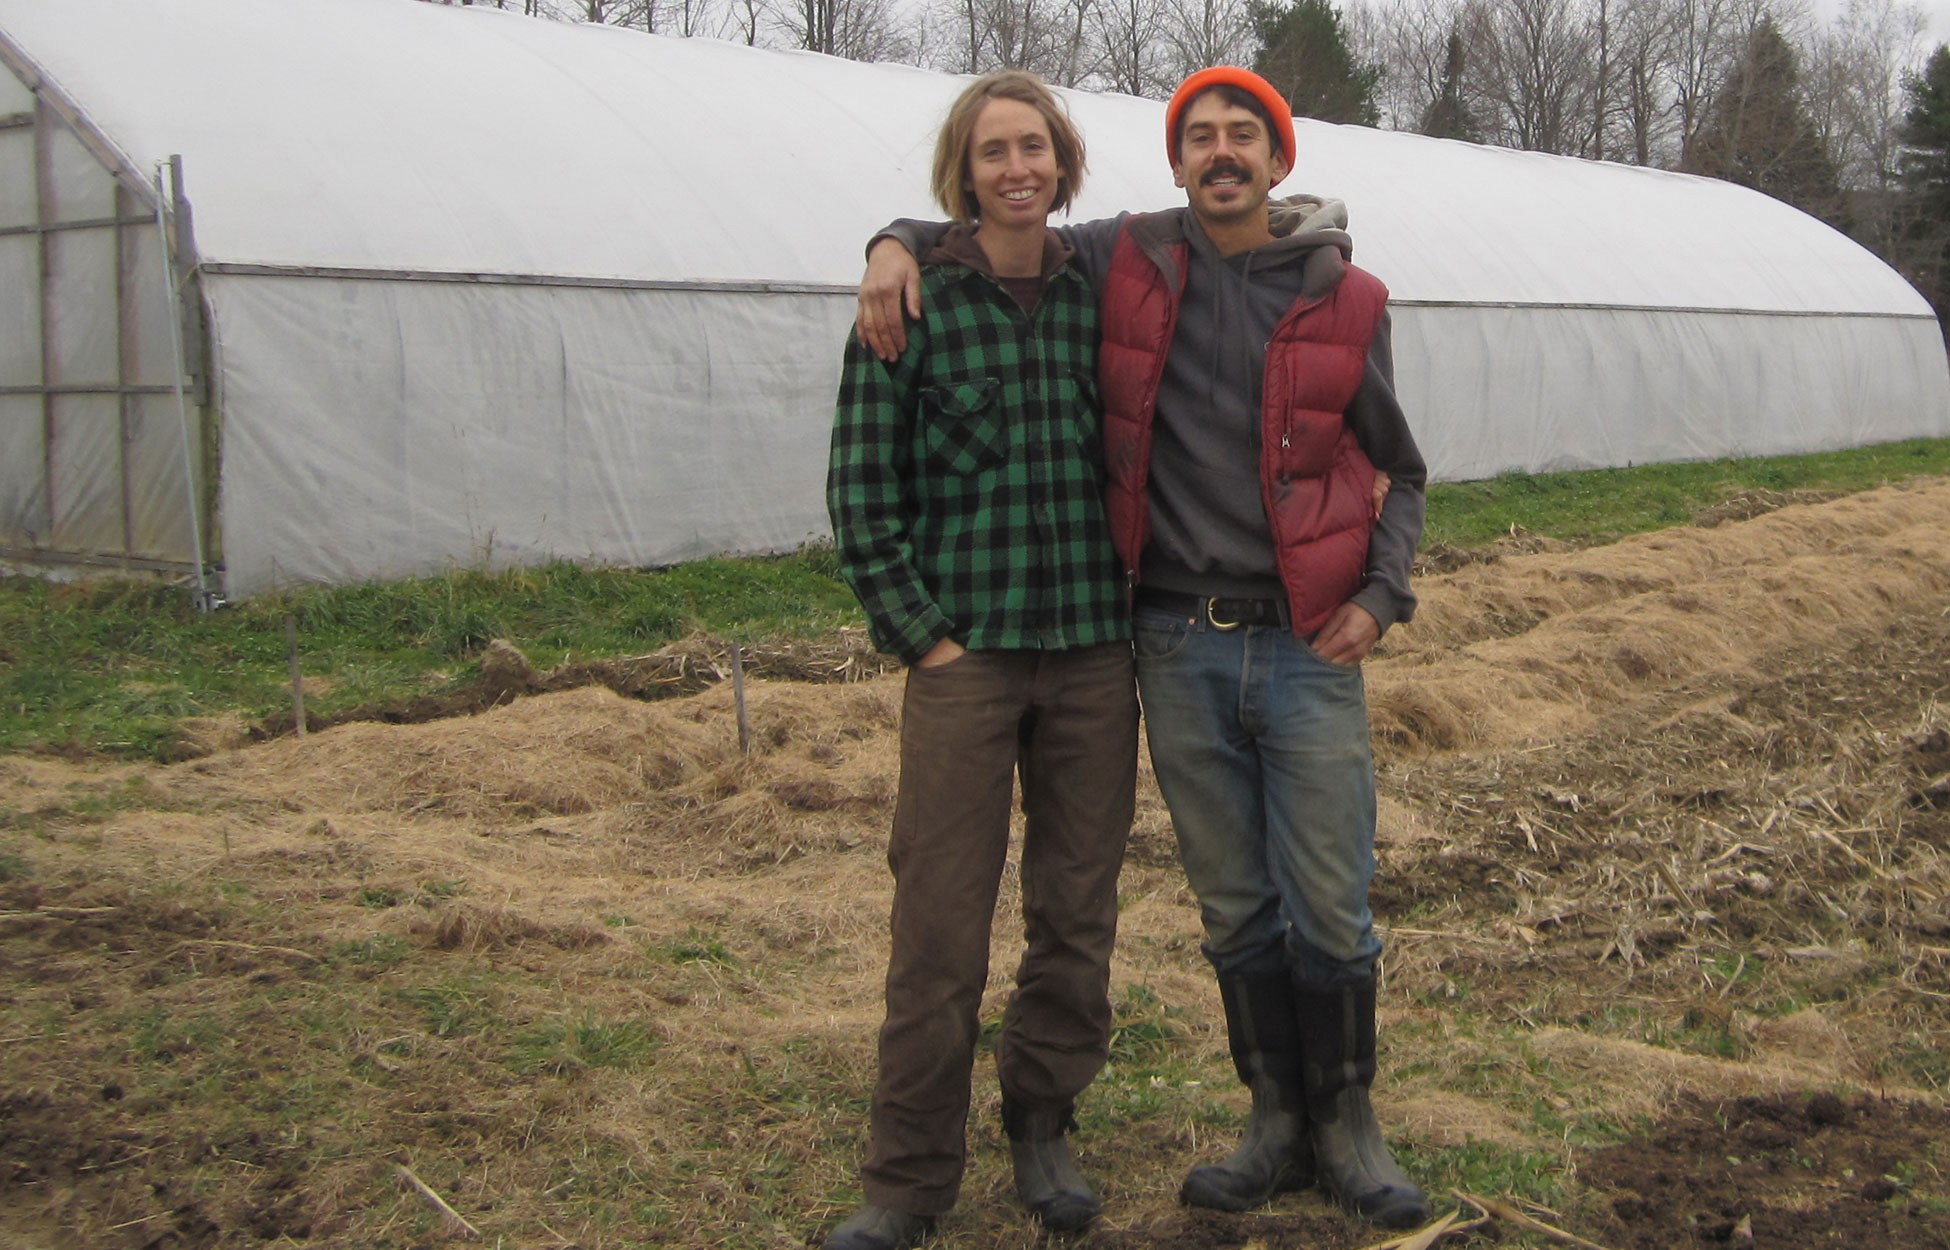 Securing A Future For Farming: Meet Johanna And Adam Of Songbird Farm